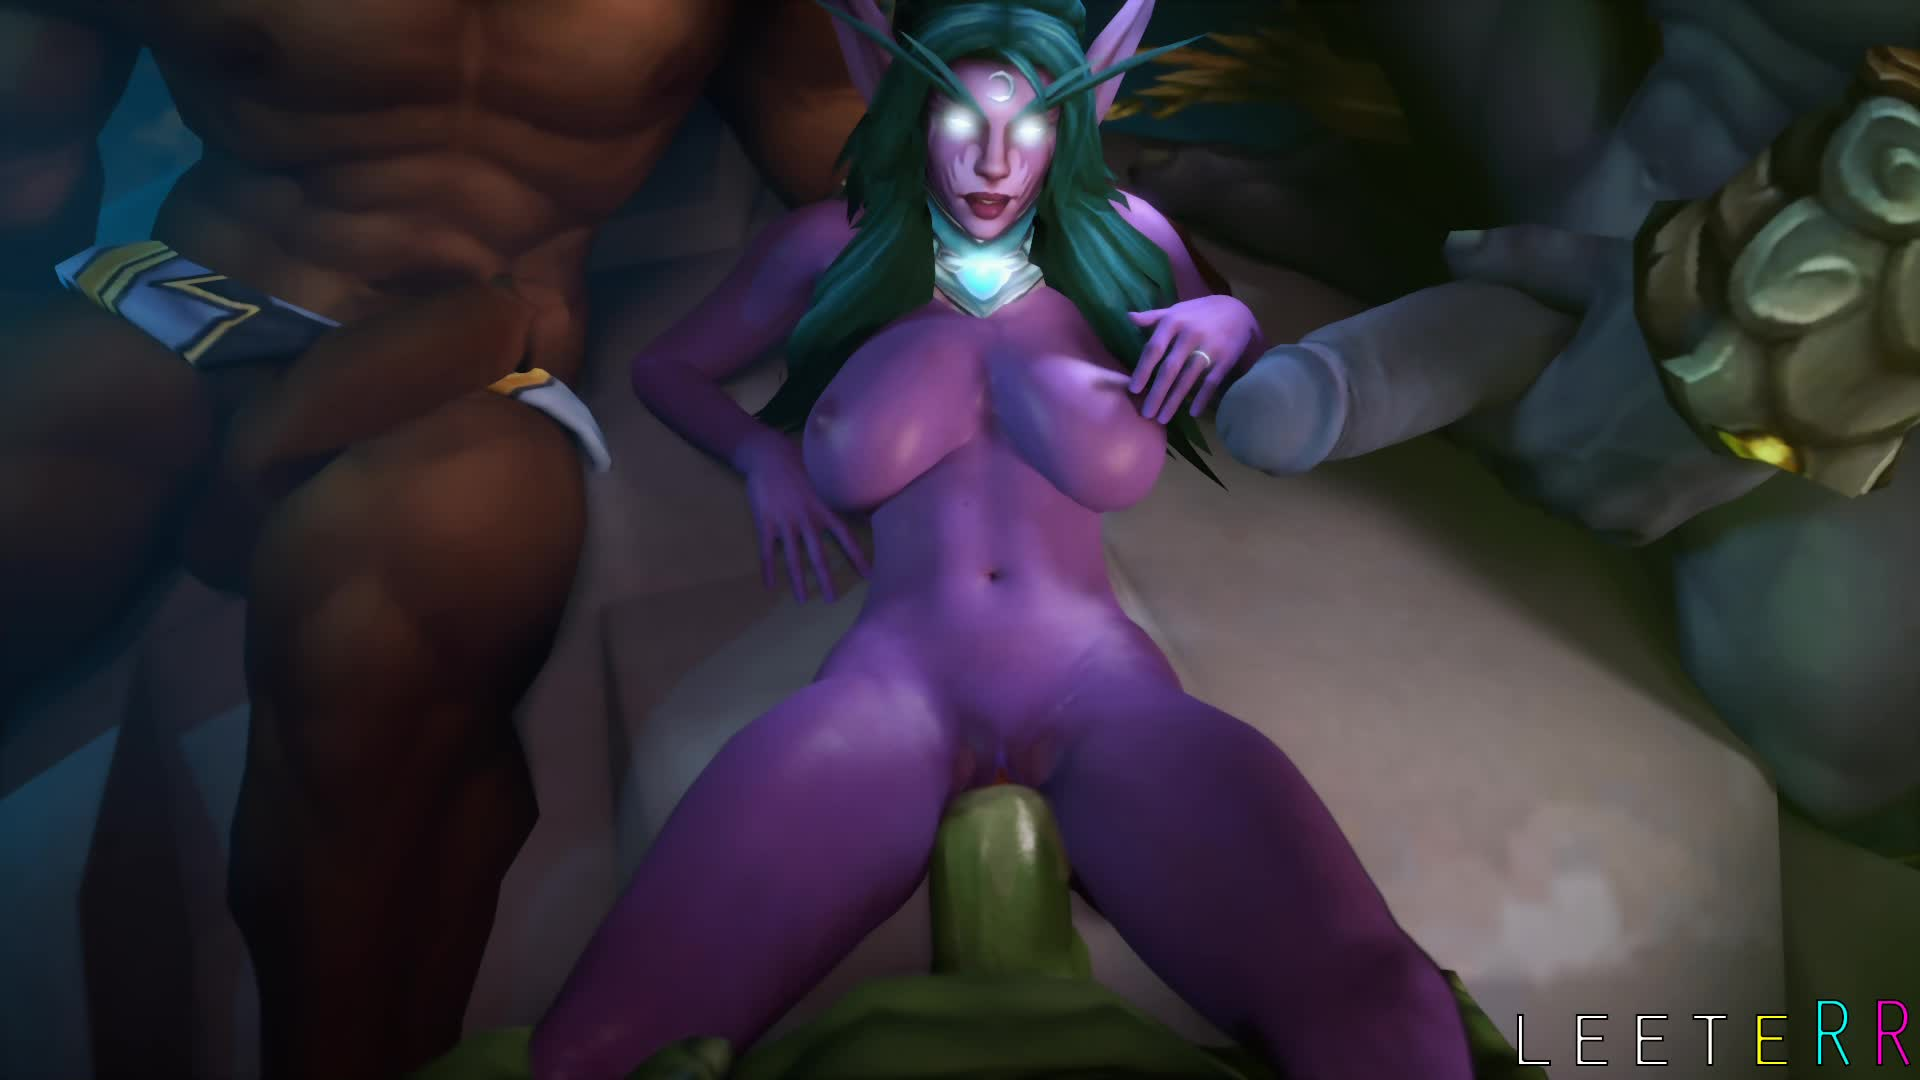 Orc fuck nightelf wow fucked galleries